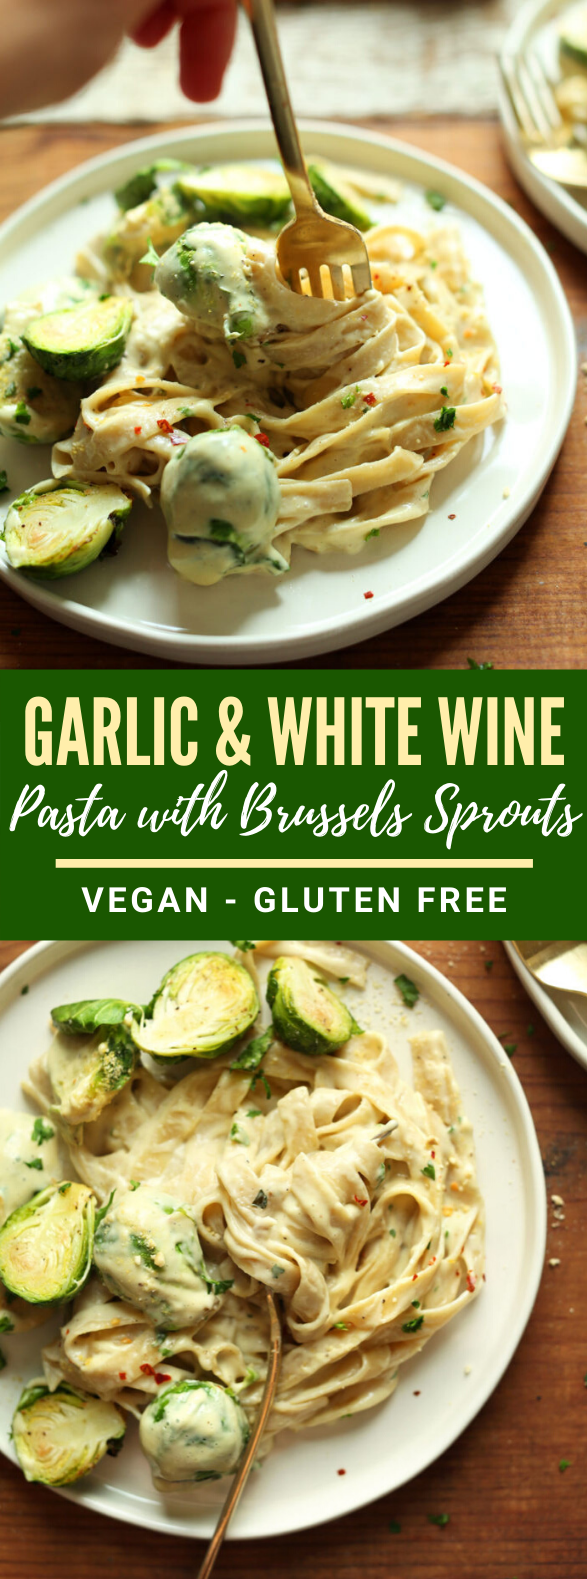 GARLIC & WHITE WINE PASTA WITH BRUSSELS SPROUTS #vegetarian #veggies